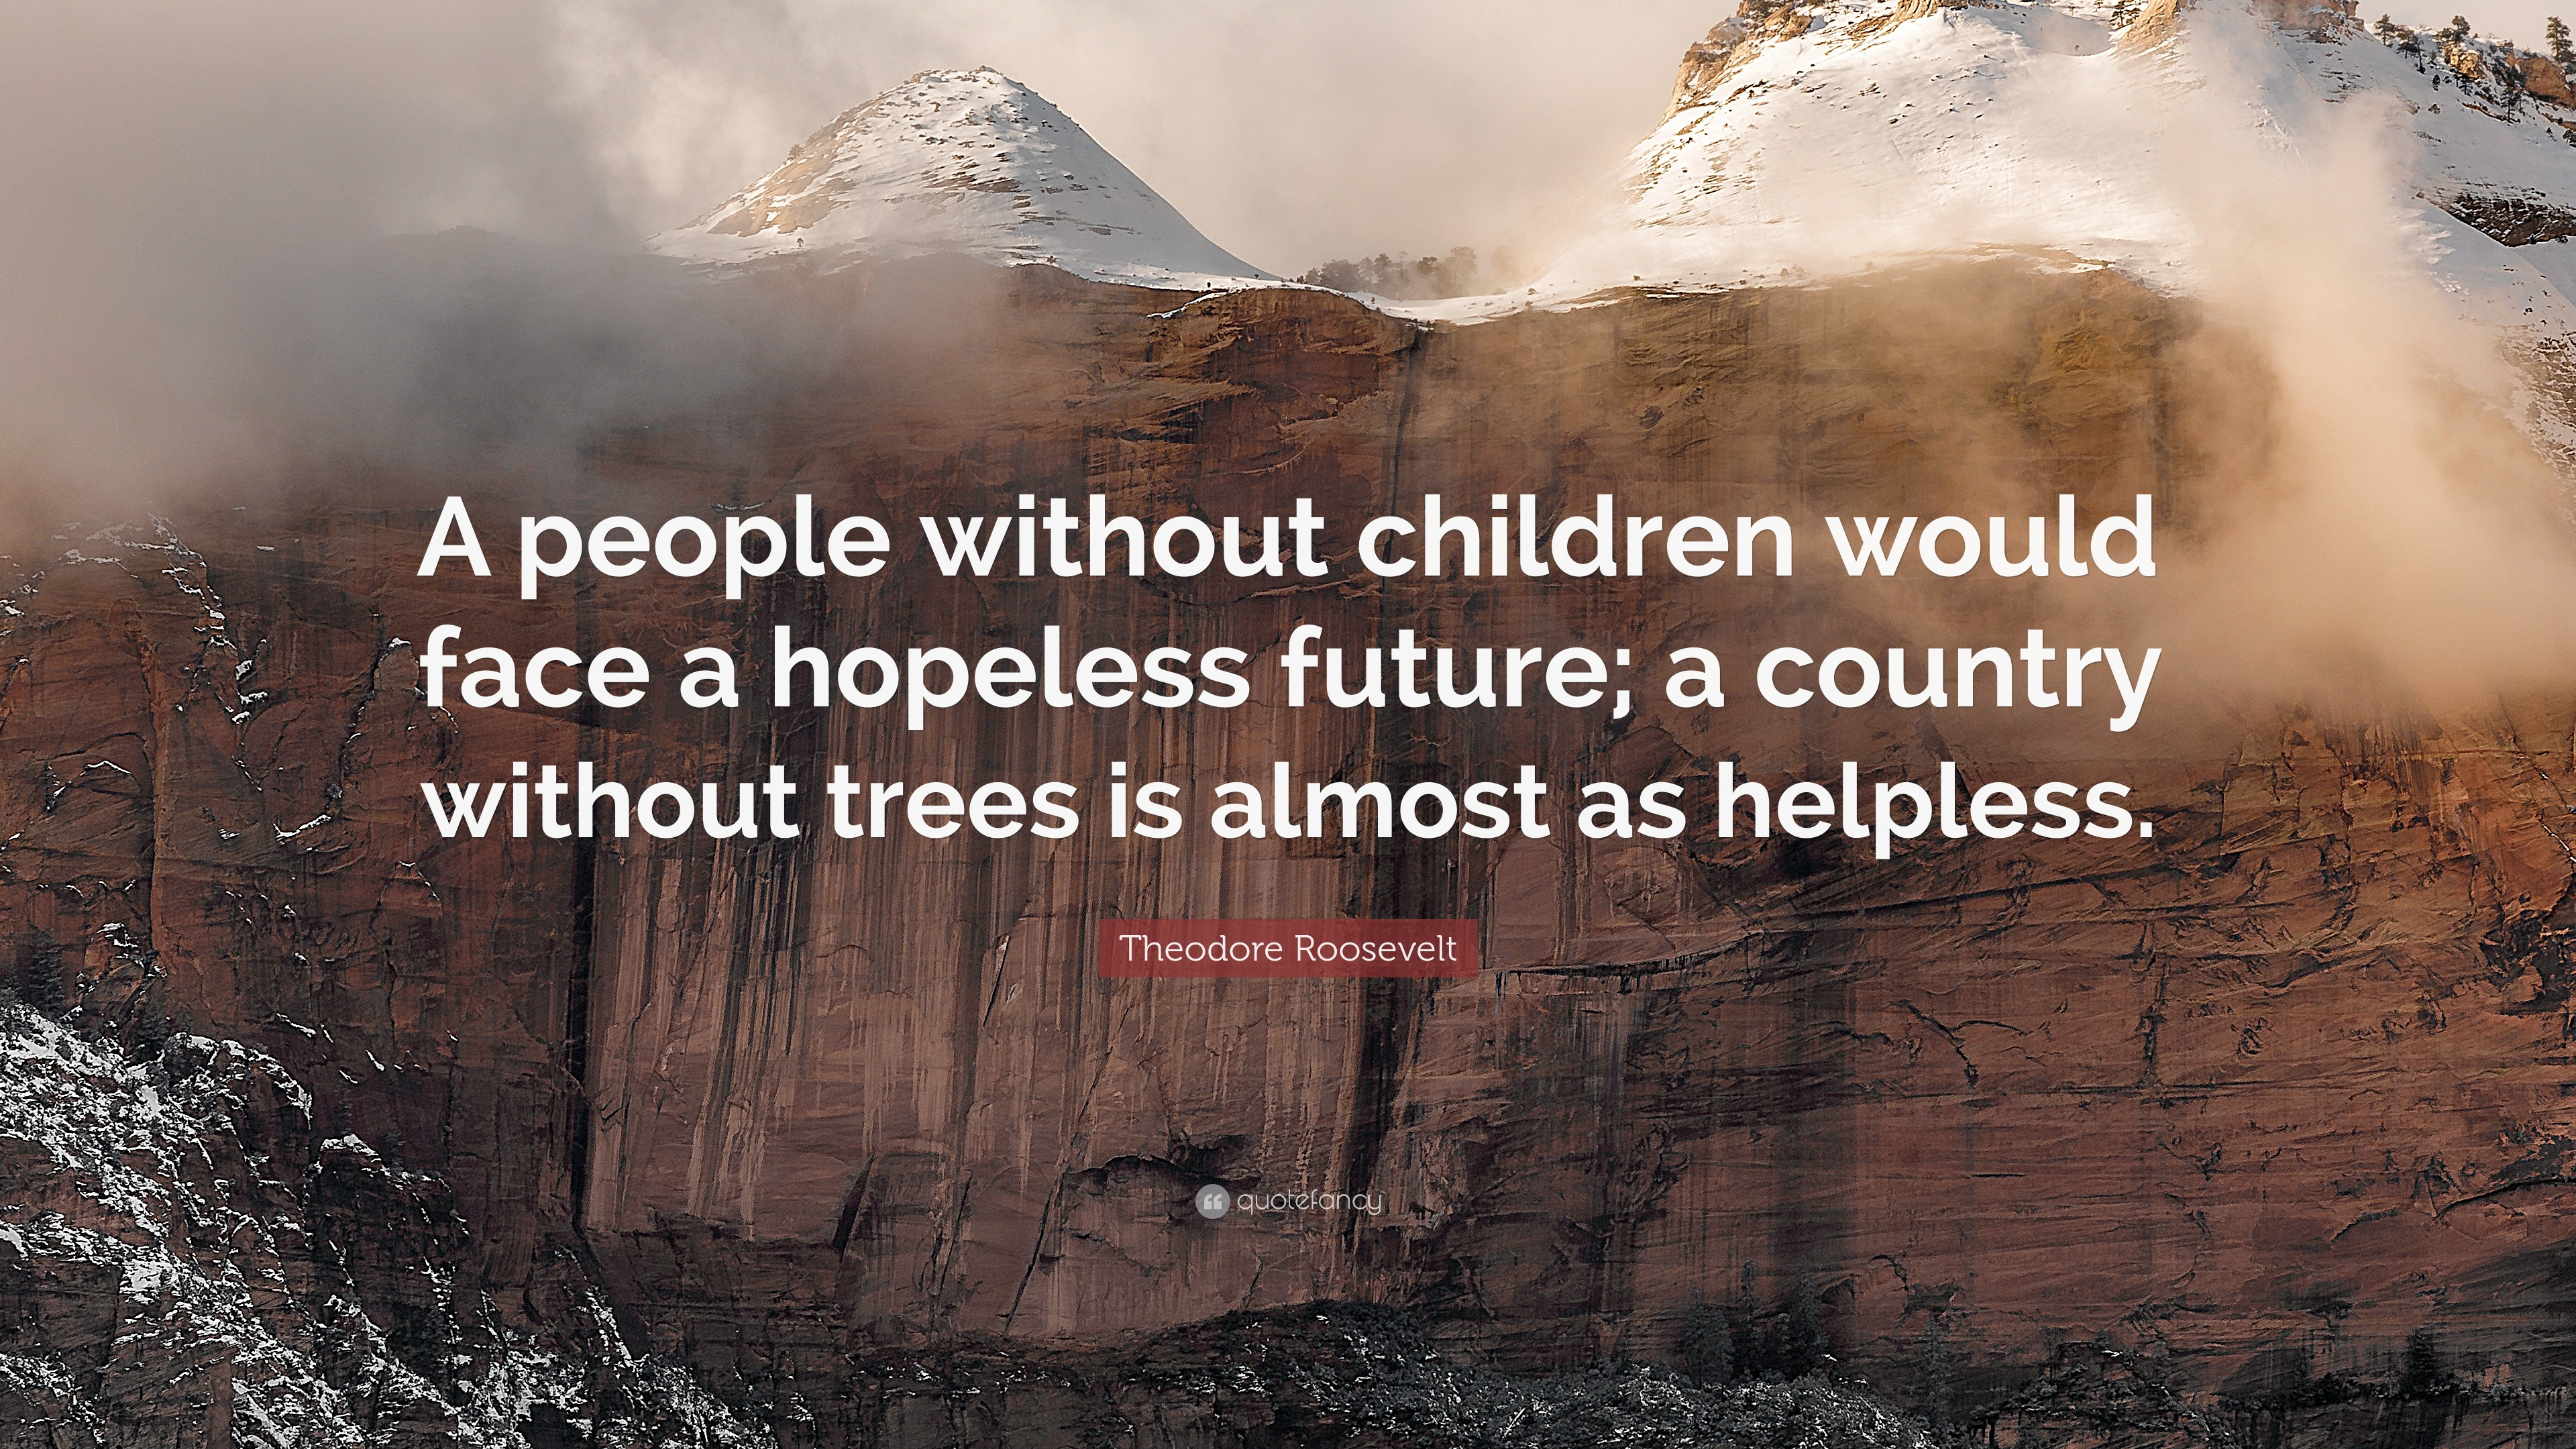 https://quotefancy.com/media/wallpaper/3840x2160/1972346-Theodore-Roosevelt-Quote-A-people-without-children-would-face-a.jpg